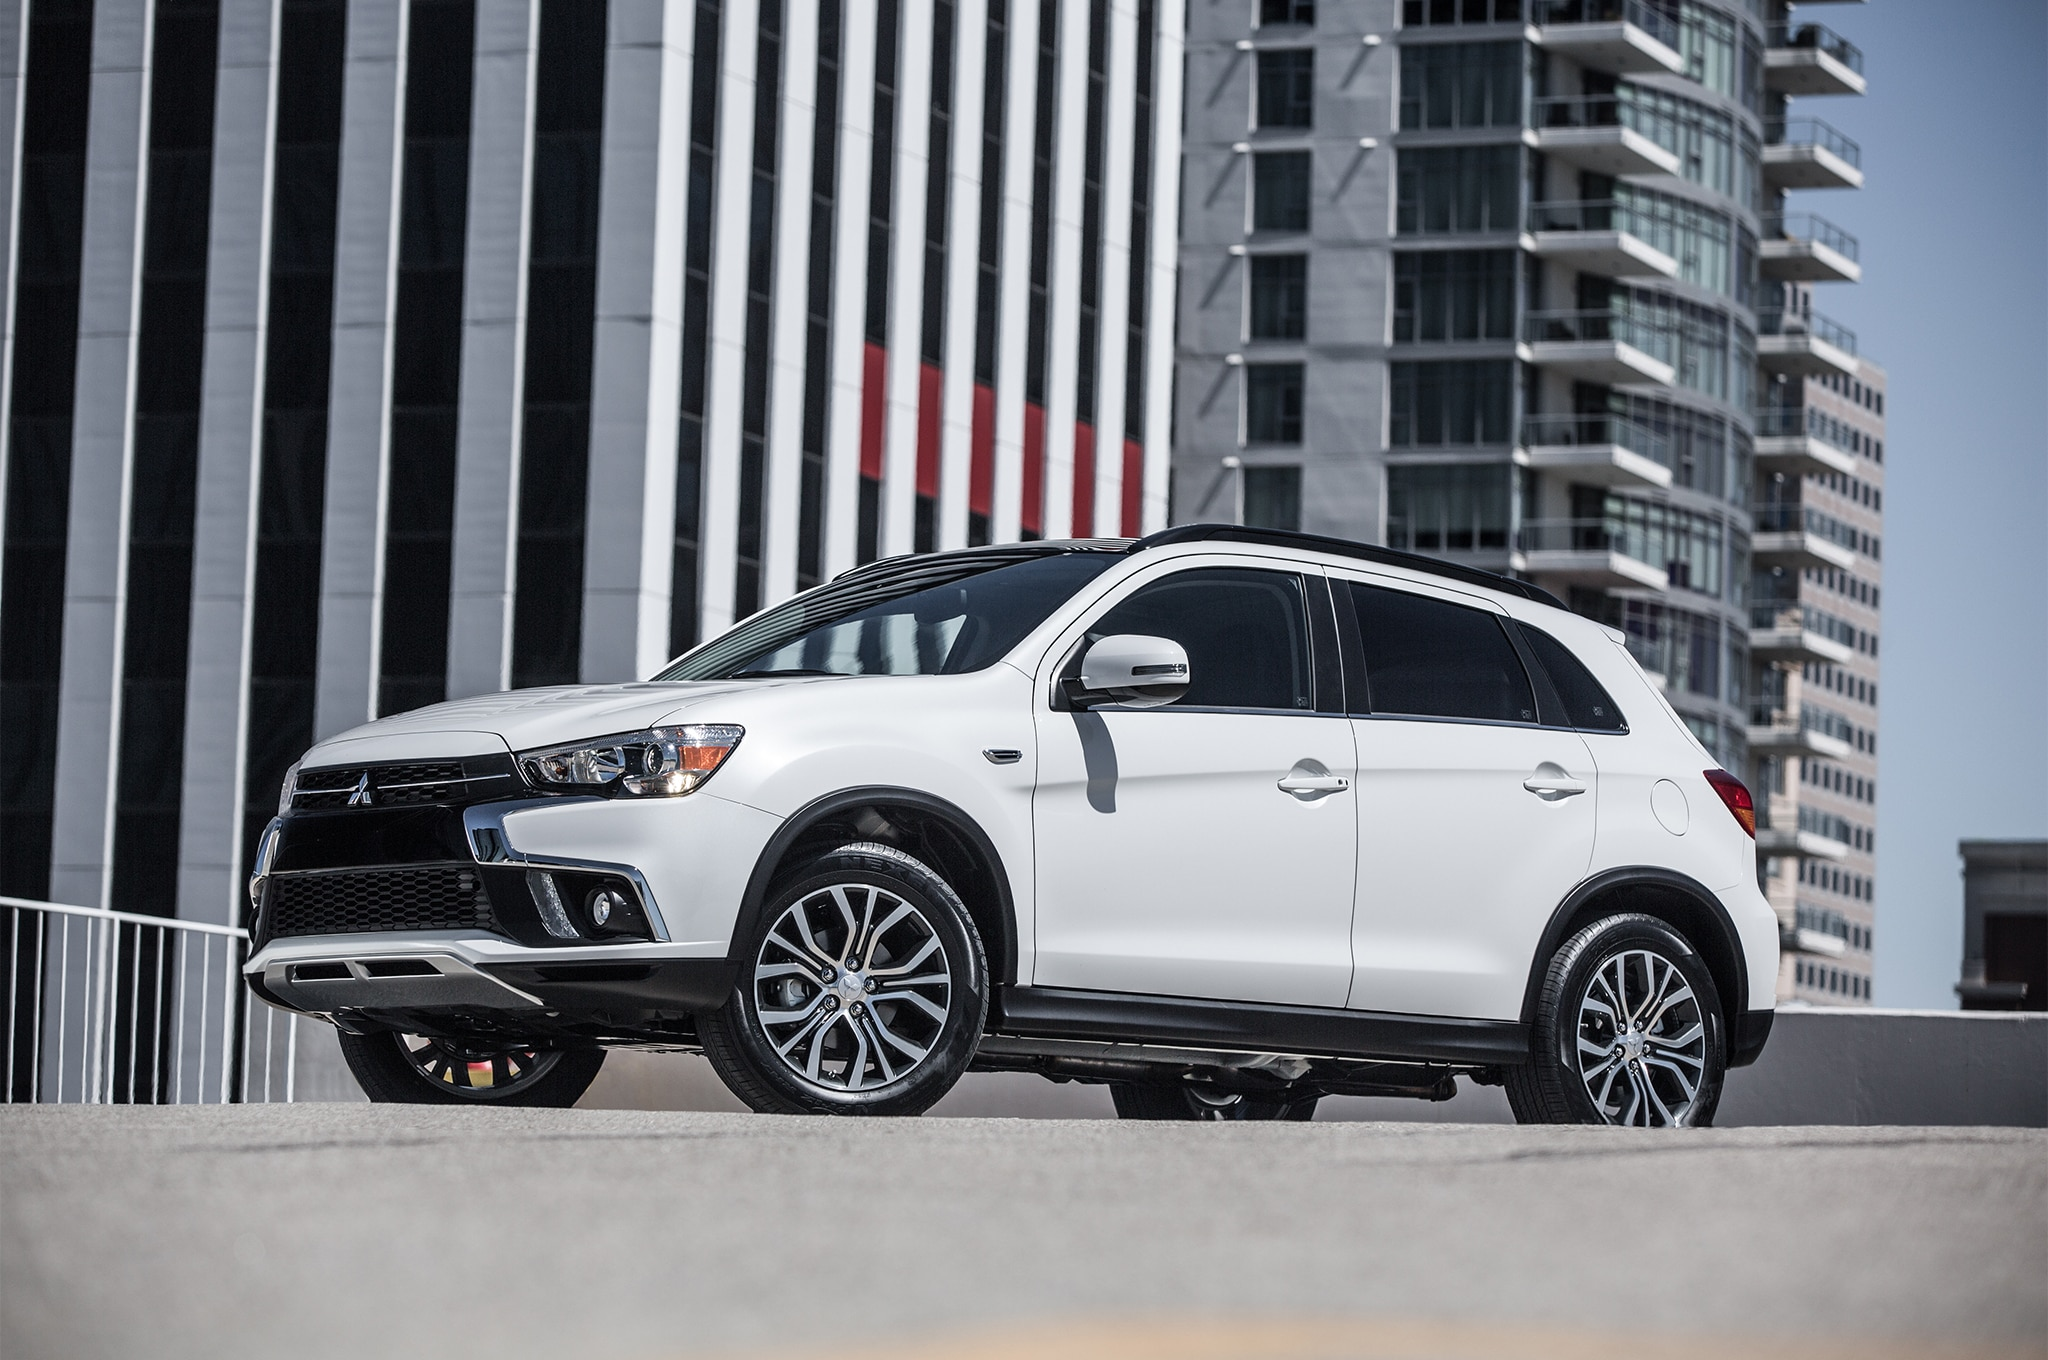 Ram Srt 10 >> 2018 Mitsubishi Outlander Sport 2.4 SEL AWC Quick Take Review | Automobile Magazine